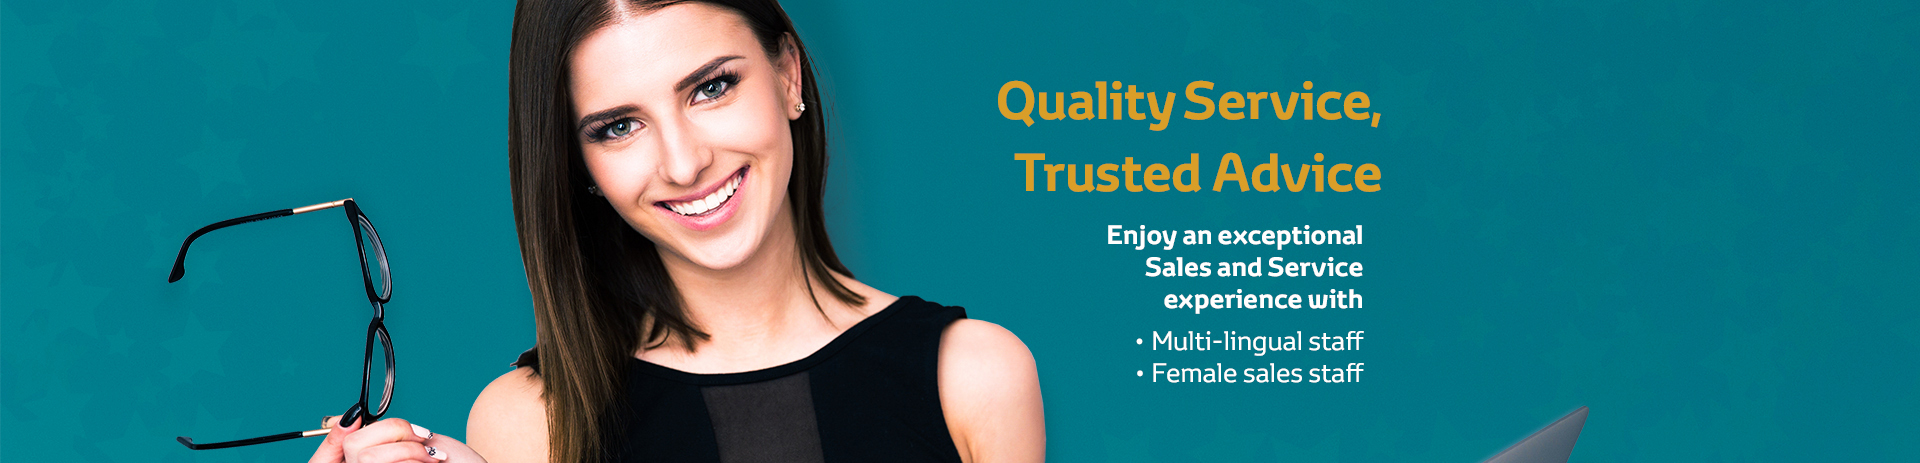 Quality Service, Trusted Advice